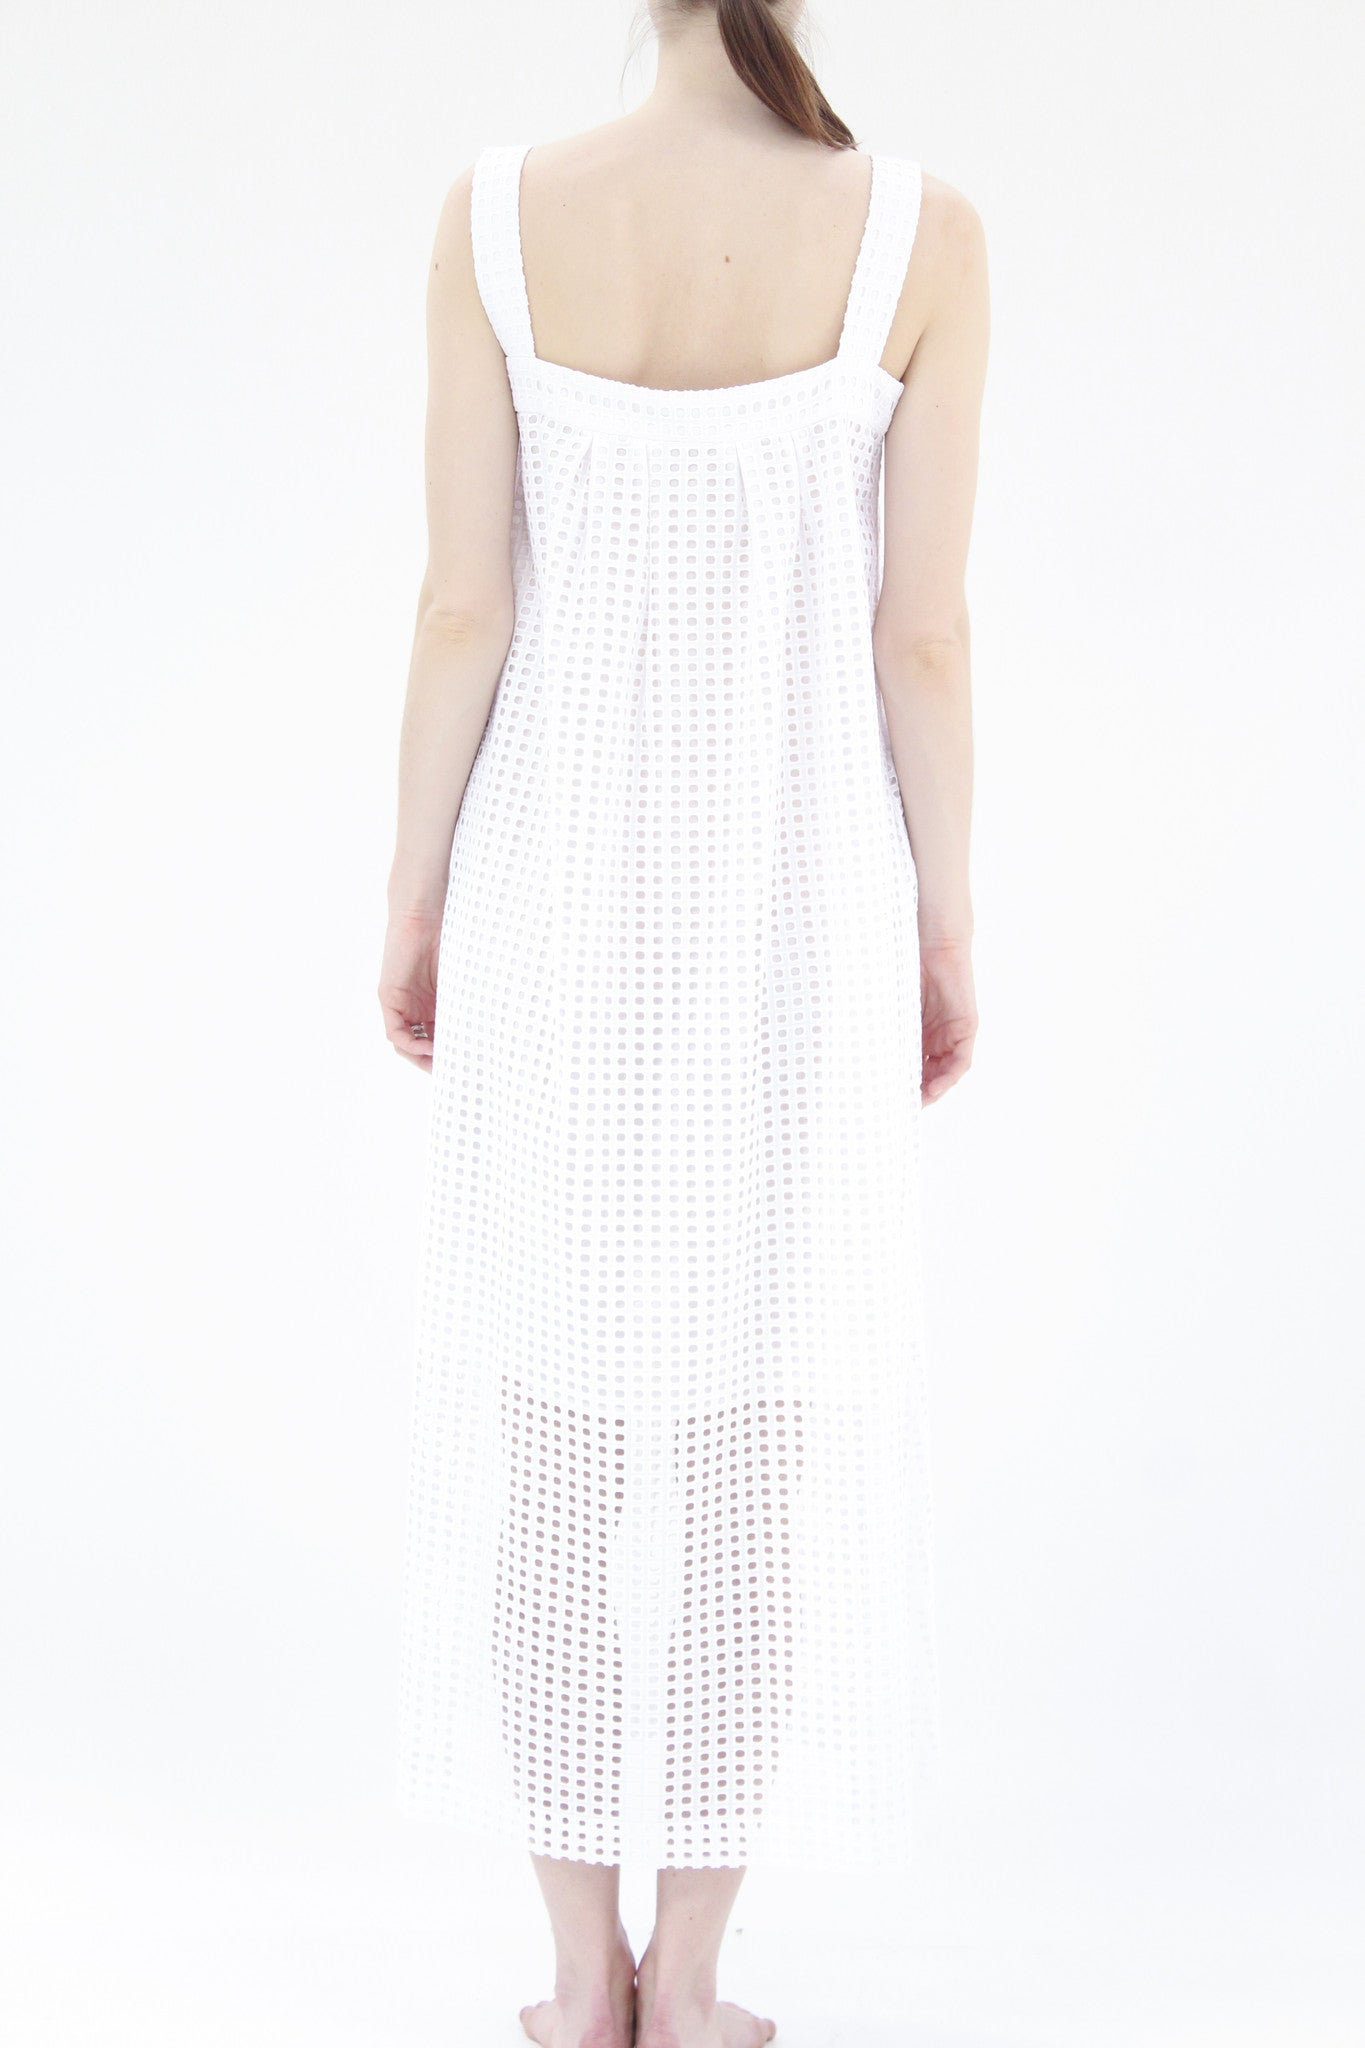 Beklina Diarte Joanne Dress White